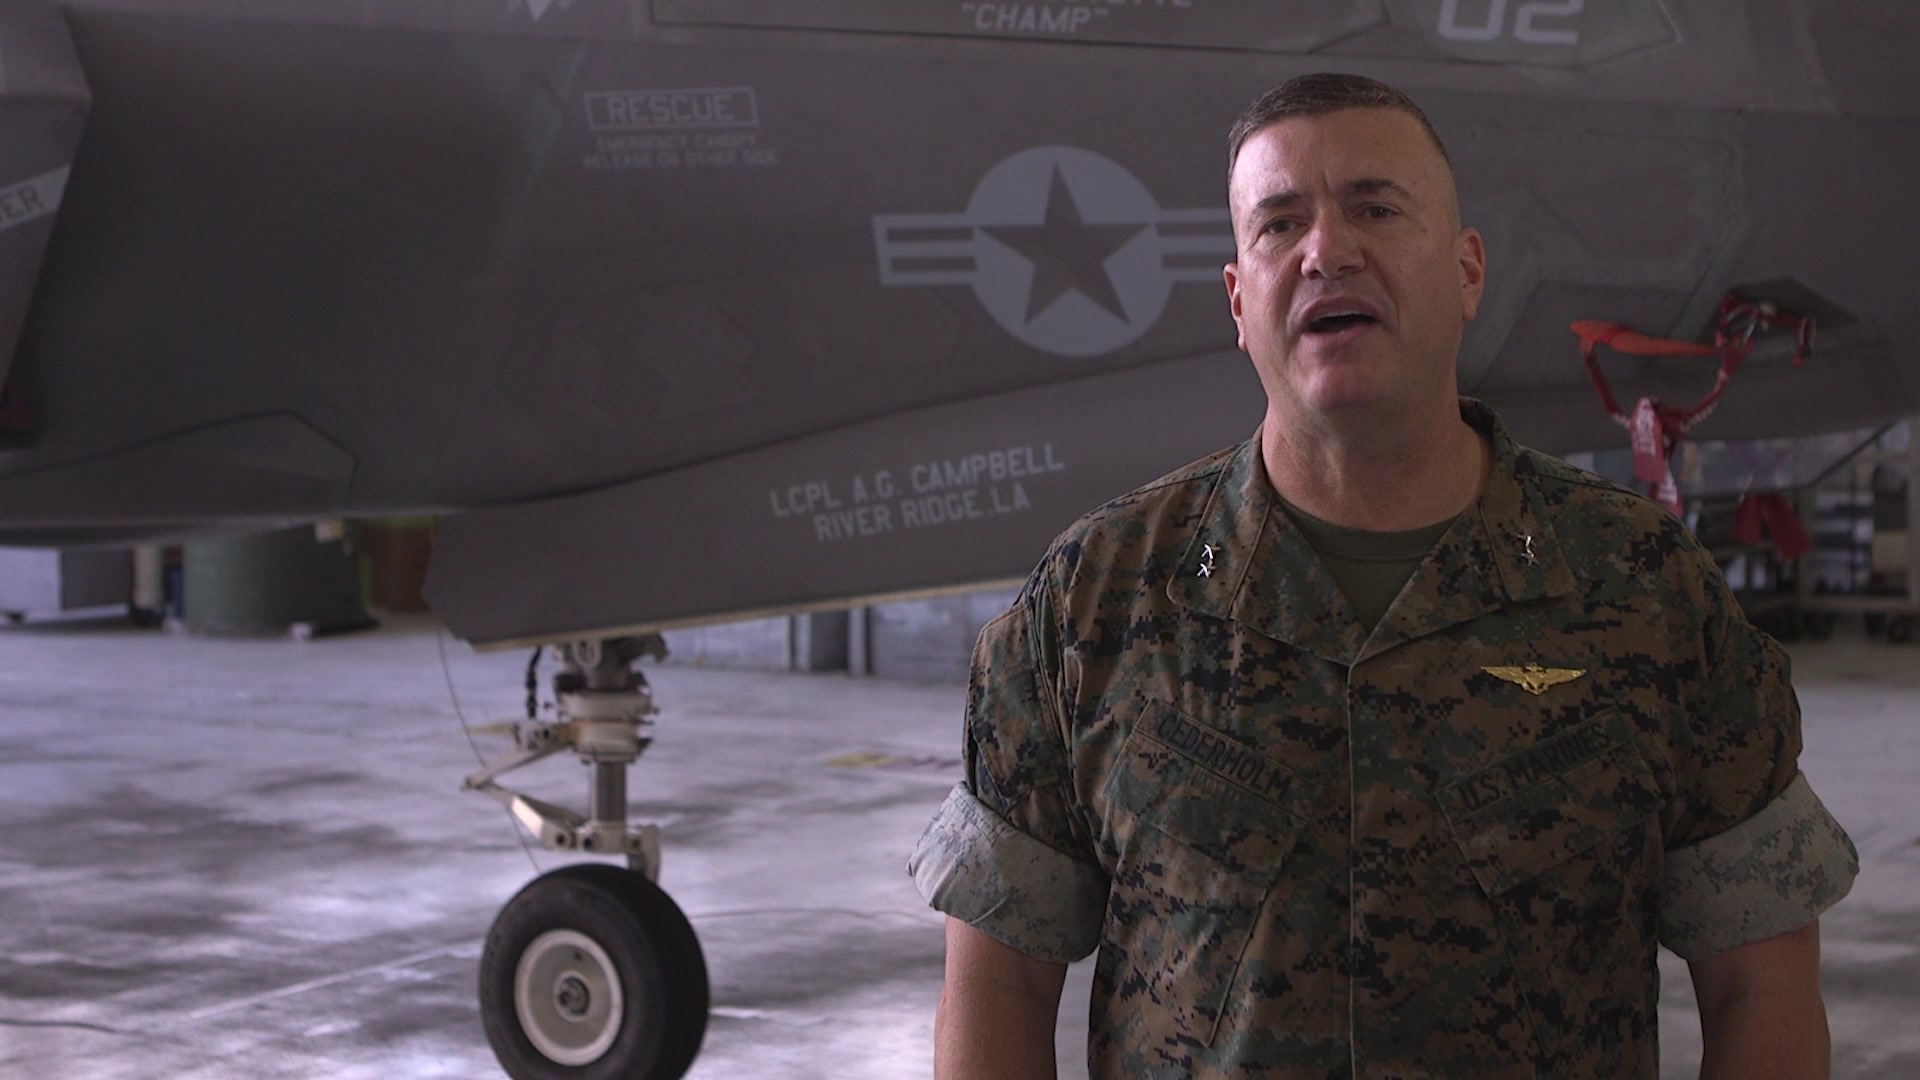 Maj. Gen. Michael S. Cederholm poses for welcome video to 2nd Marine Aircraft Wing at Marine Corps Air Station Cherry Point, North Carolina, July 9th, 2020. The video greets Marines, Sailors and their Families as Cederholm assumes command of 2nd MAW from Maj. Gen. Karsten S. Heckl, July 10th, 2020. (U.S. Marine Corps video by Cpl. Paige C. Stade)